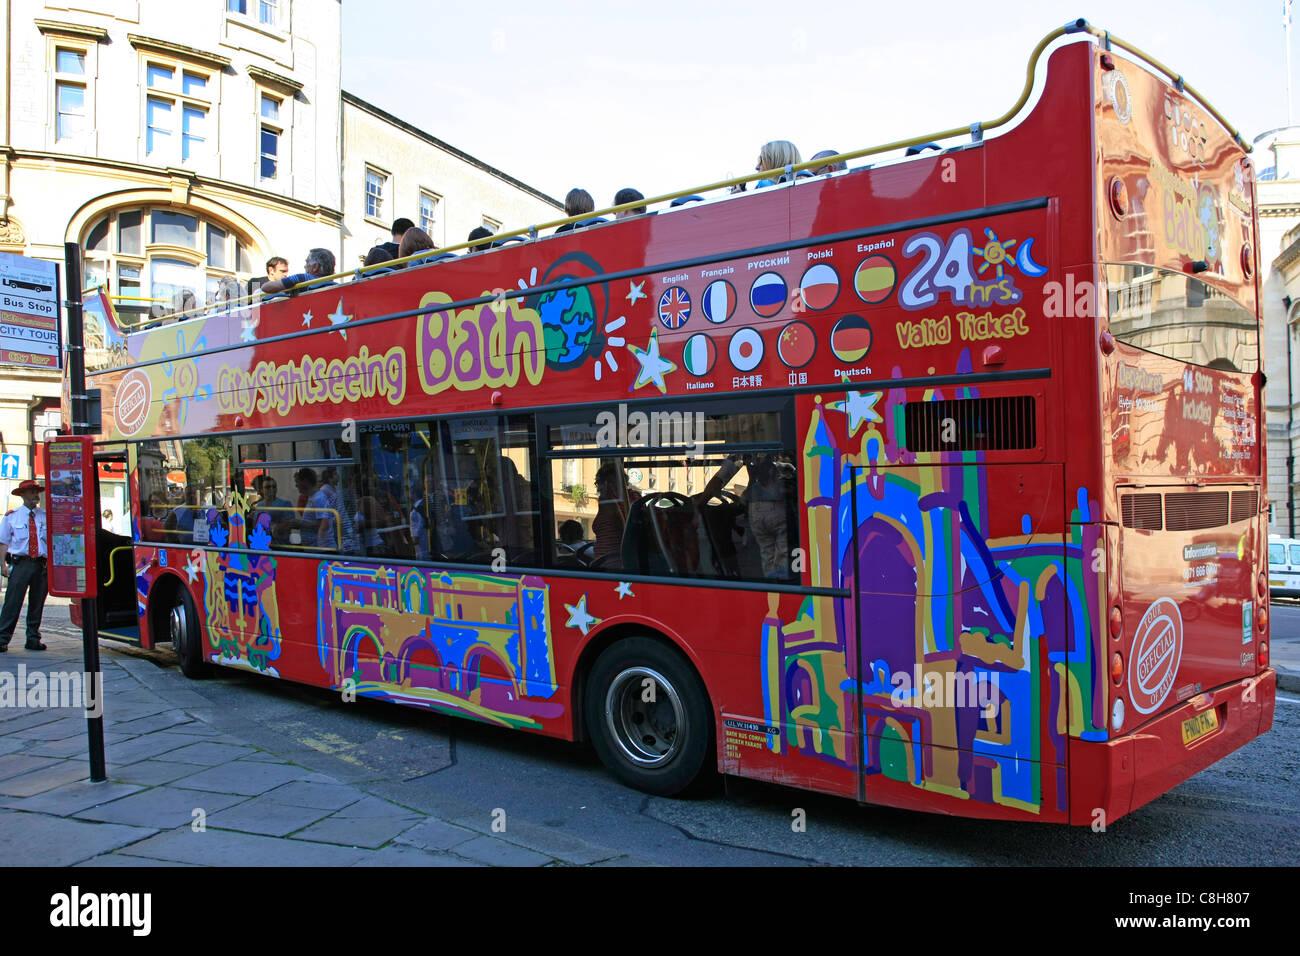 The City Sightseeing Bus in Bath Stock Photo